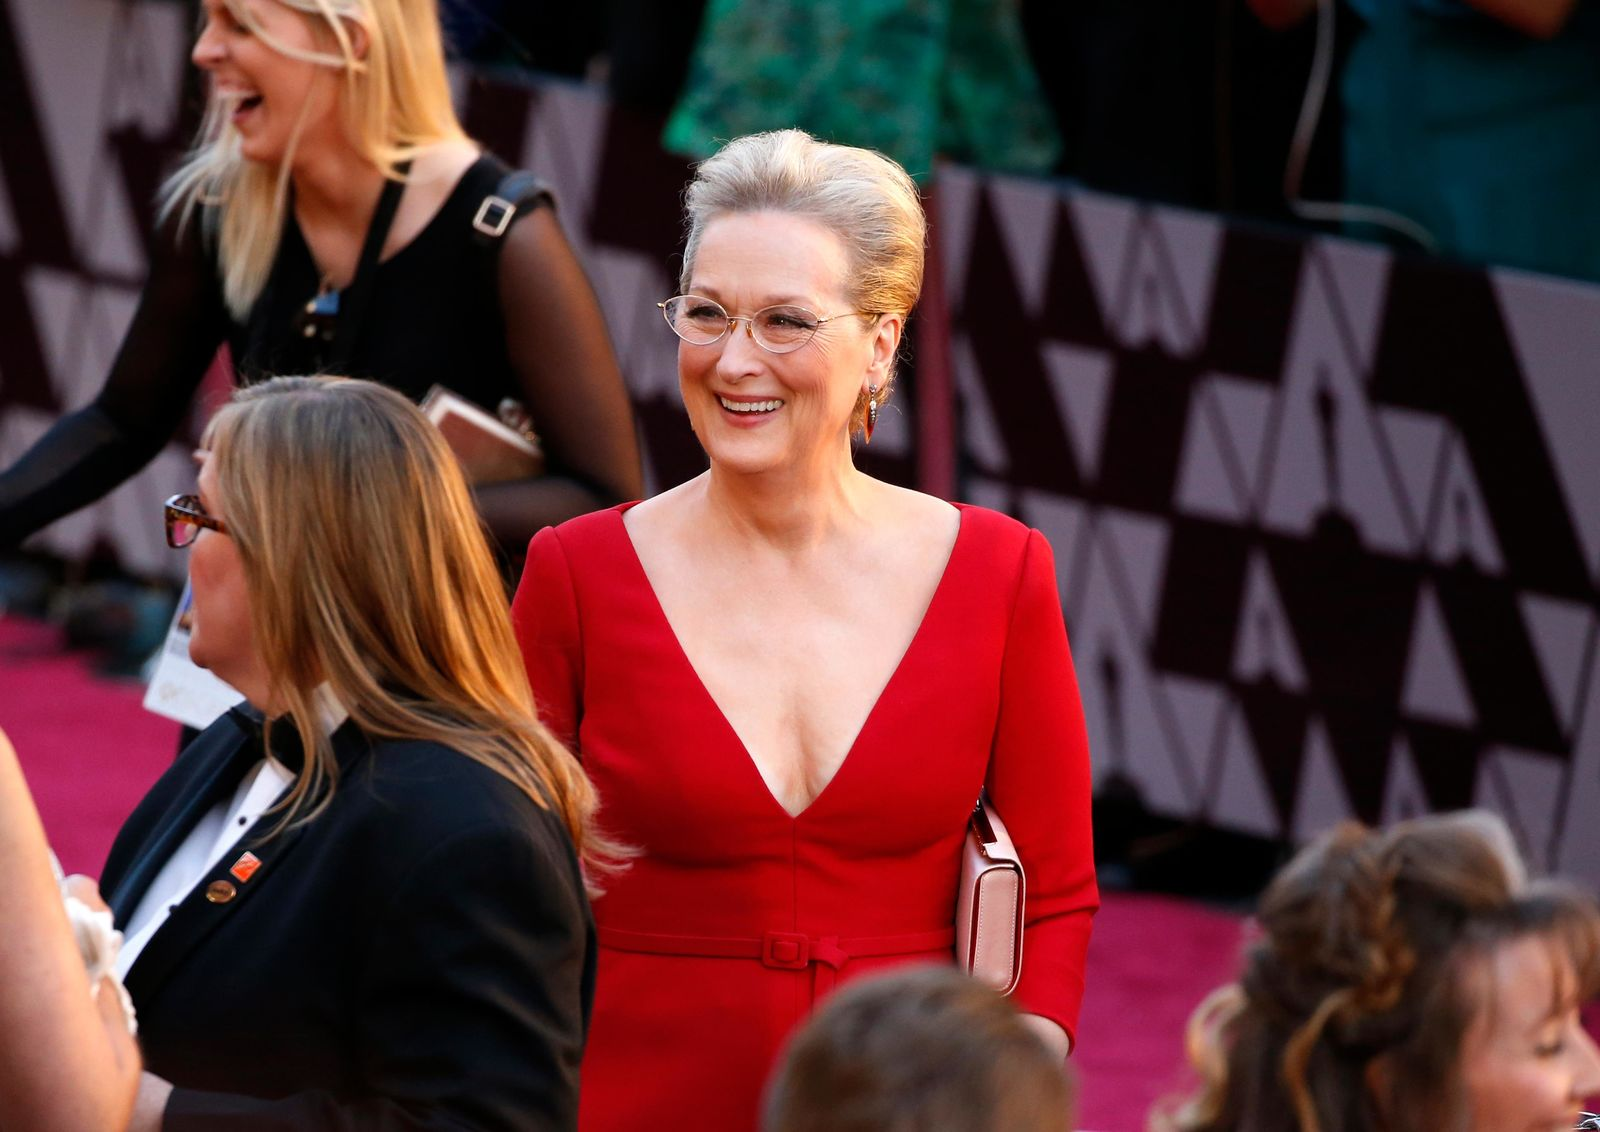 Meryl Streep arrives at the Oscars on Sunday, March 4, 2018, at the Dolby Theatre in Los Angeles. (Photo by Eric Jamison/Invision/AP)